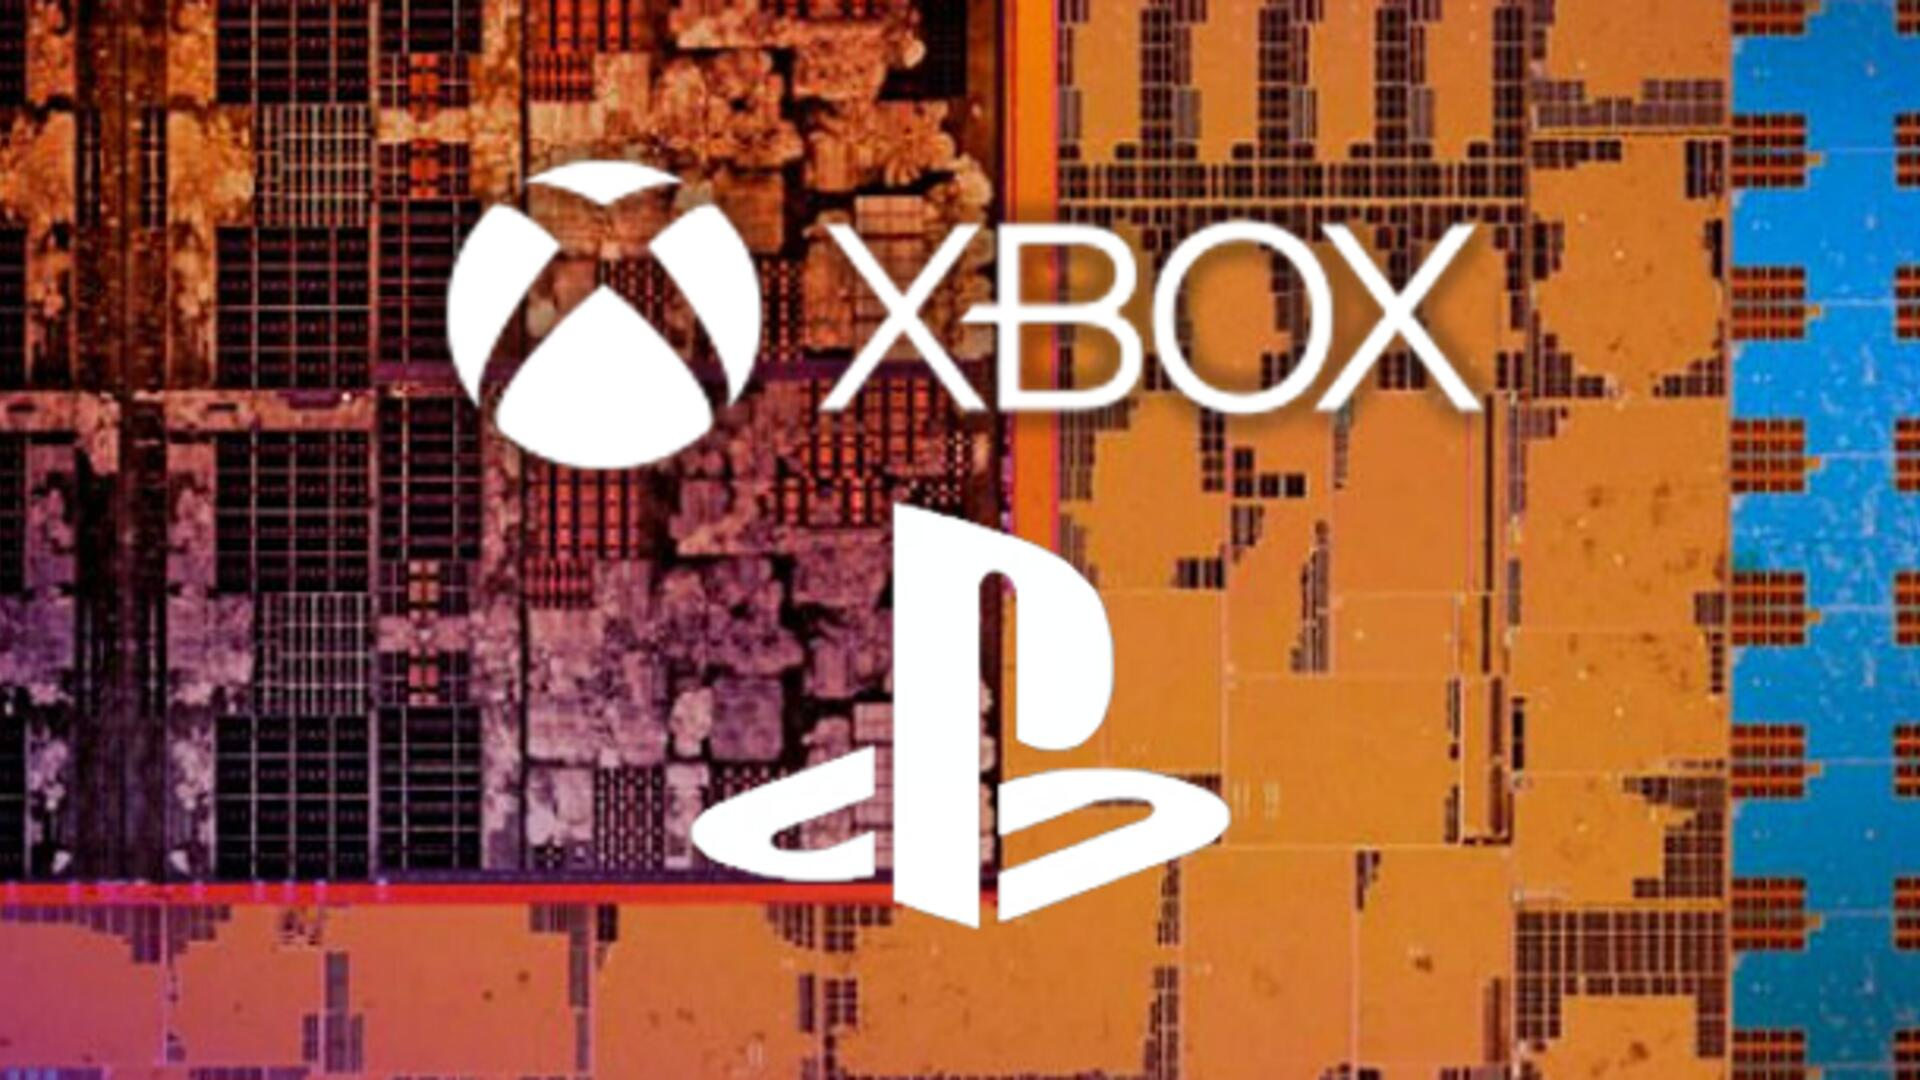 PlayStation 5 and Xbox Two: How the Next Generation of Consoles Will Move Gaming Forward